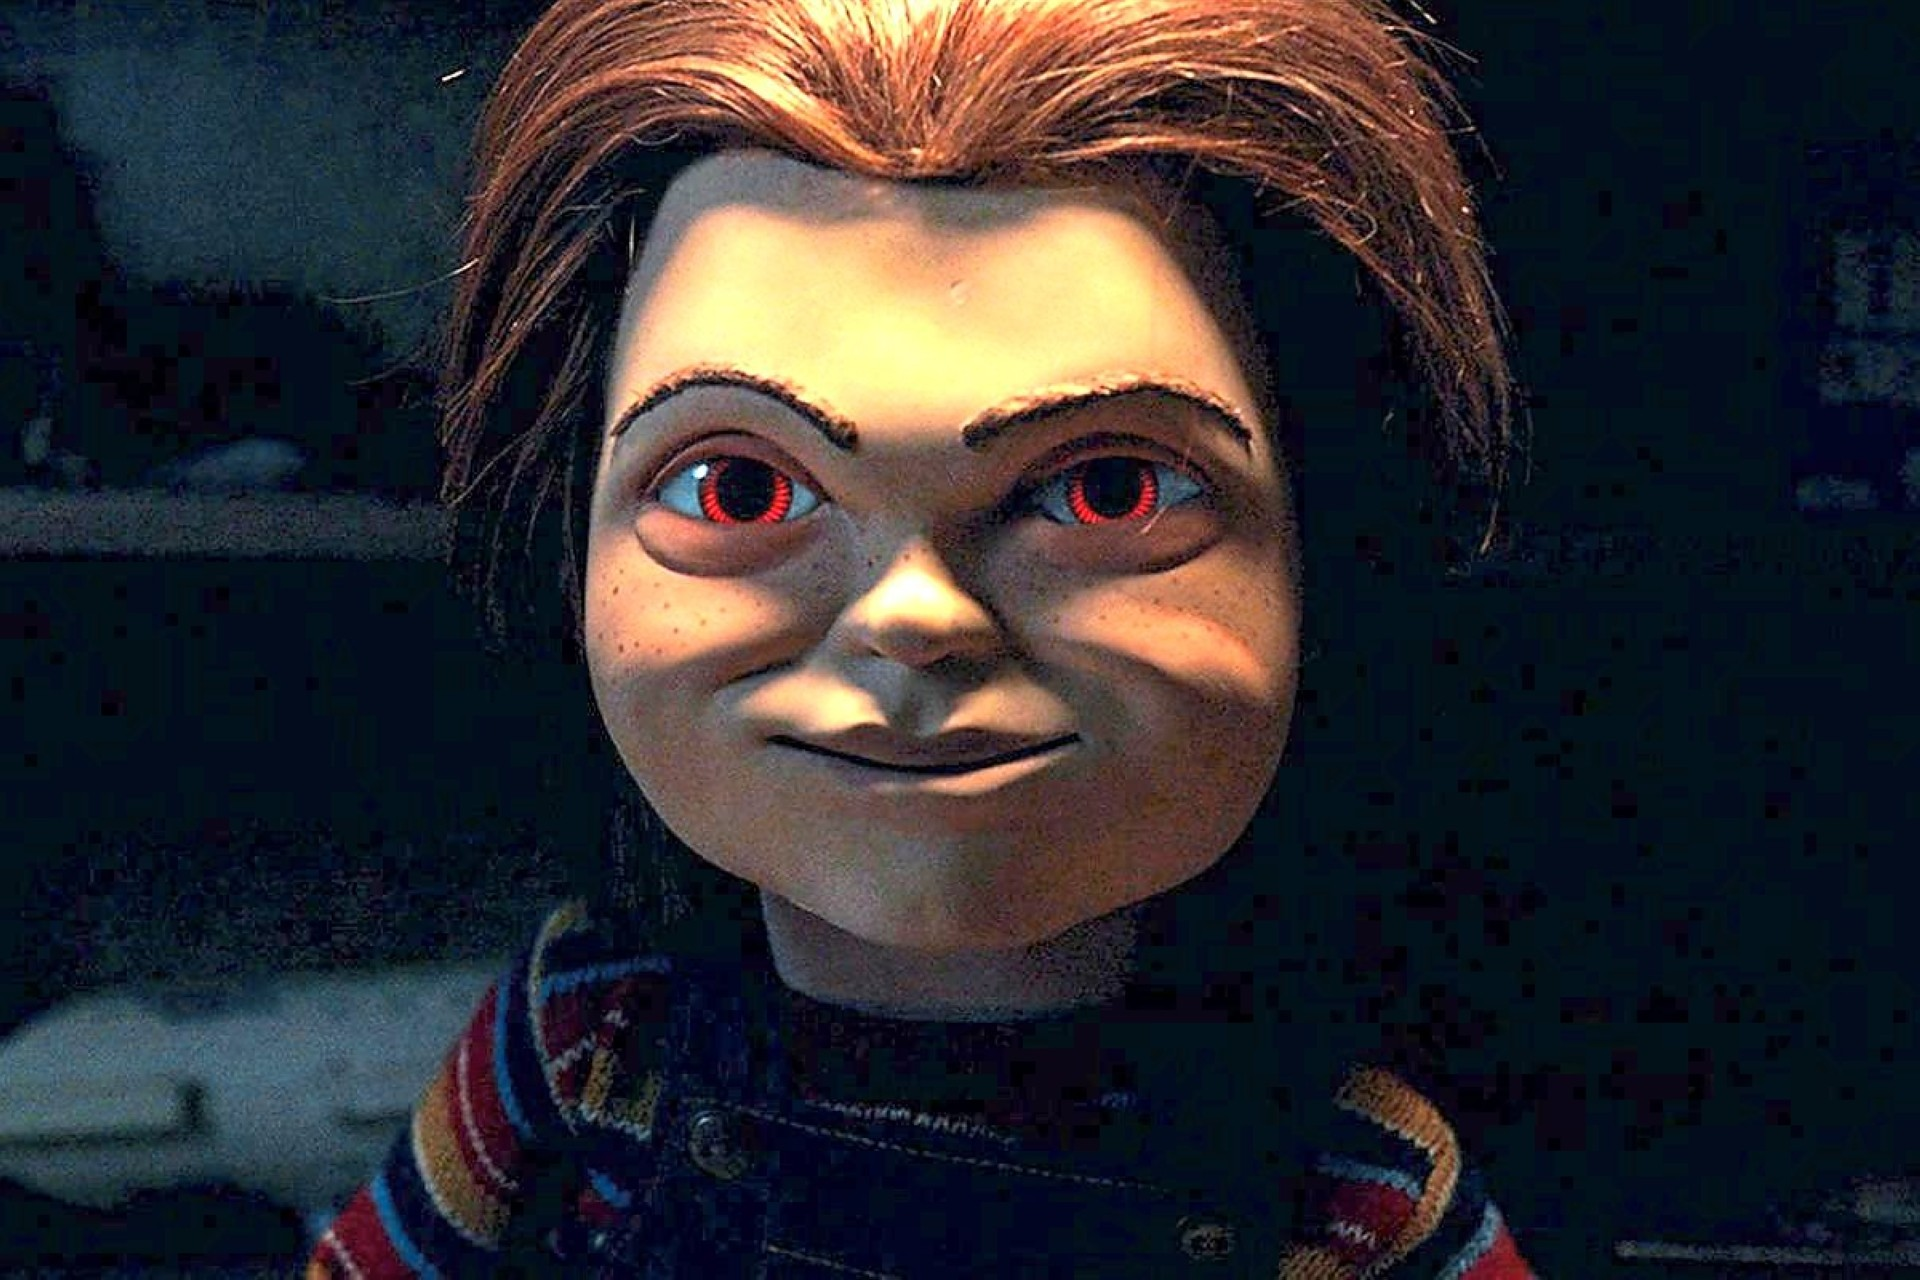 Child's Play? More like don't play. — Orion Pictures